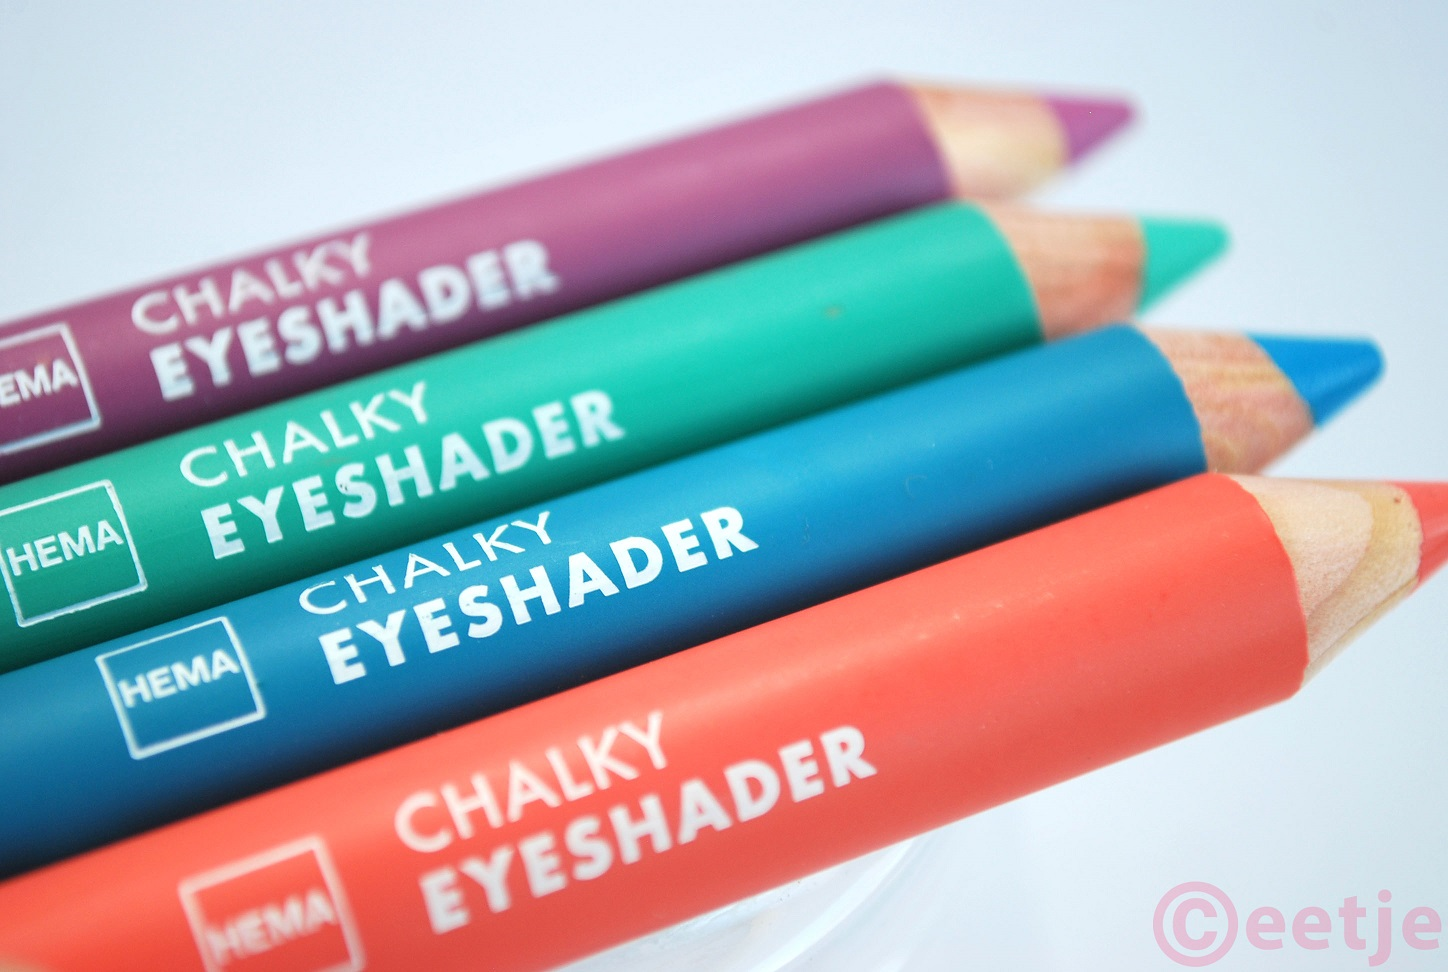 Chalky eye shader hema paars oranje mintgroen review